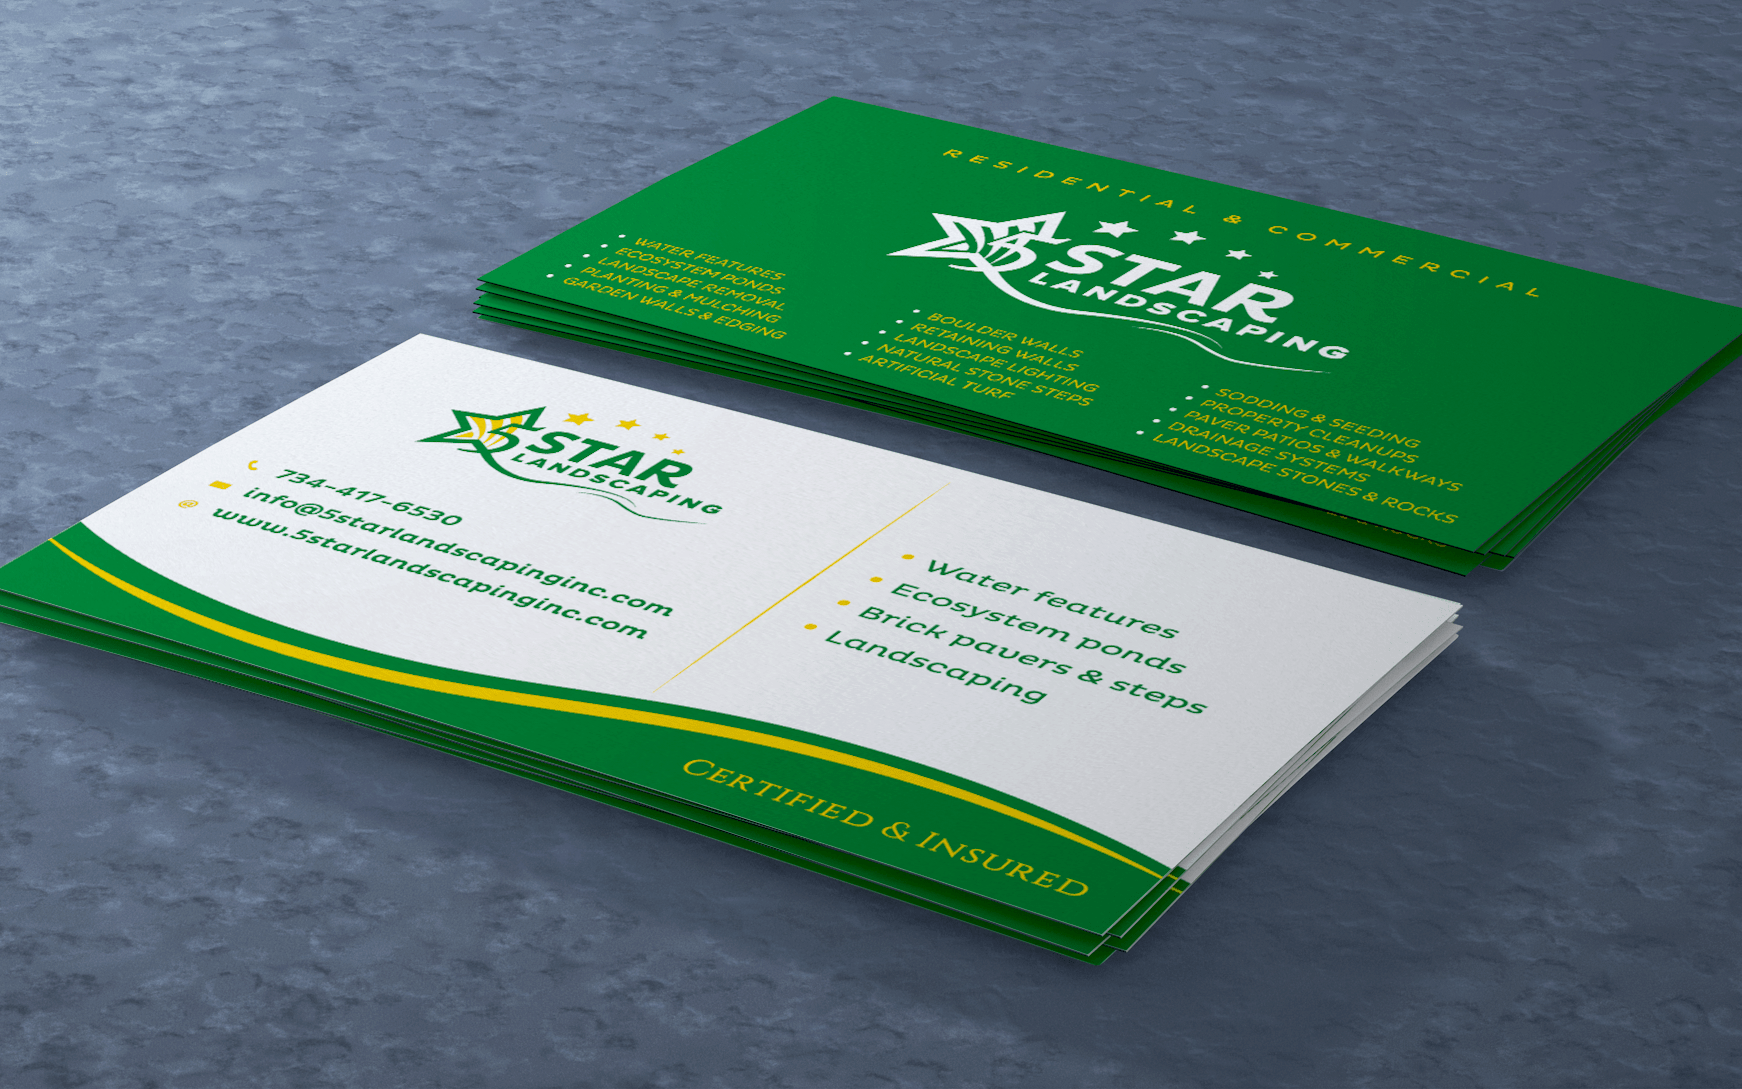 5STAR LANDSCAPING BUSINESS CARD